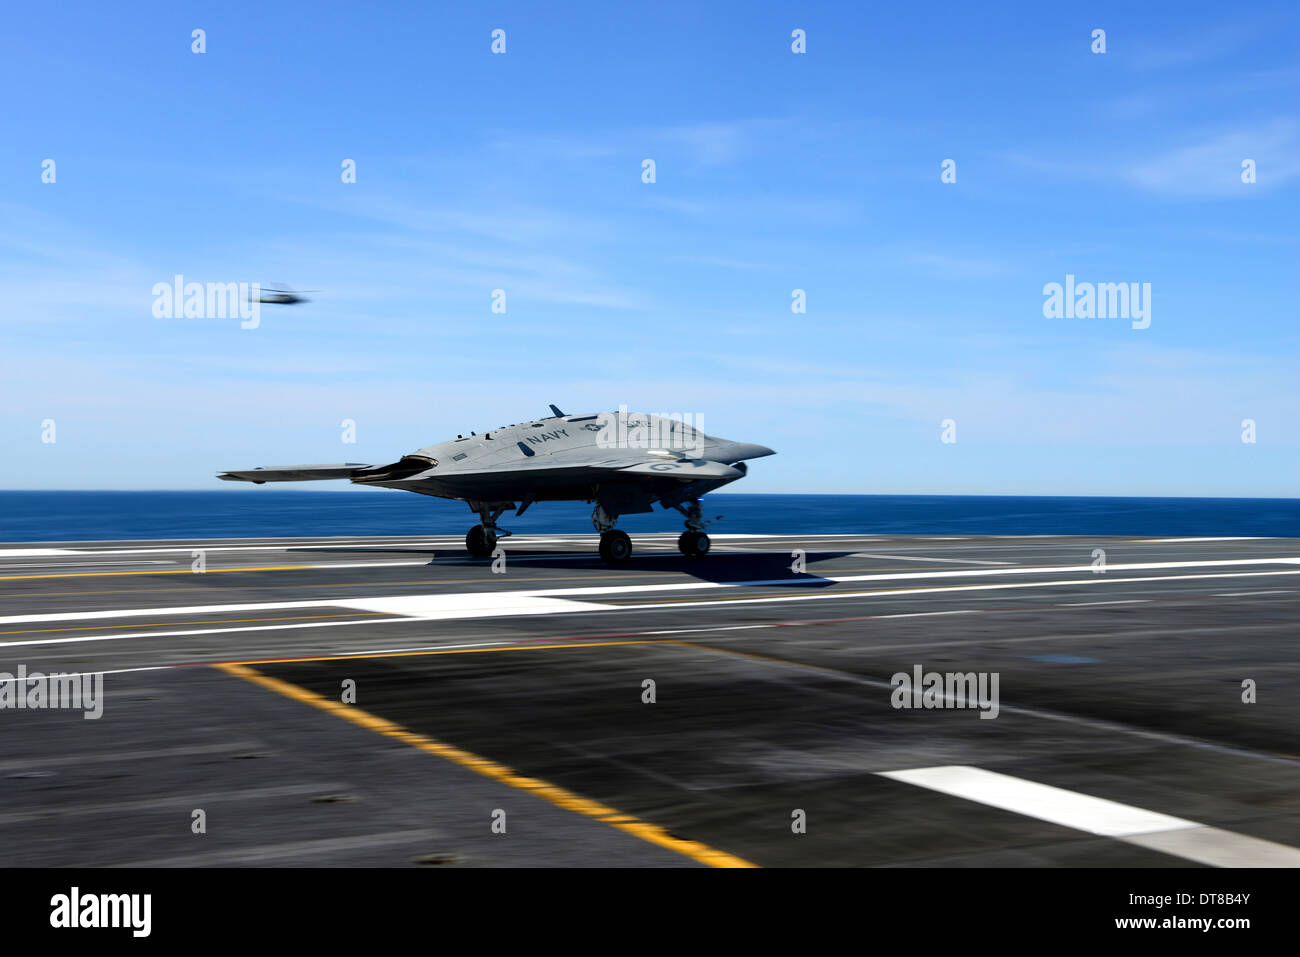 An X-47B unmanned combat air system conducts a touch and go landing. - Stock Image